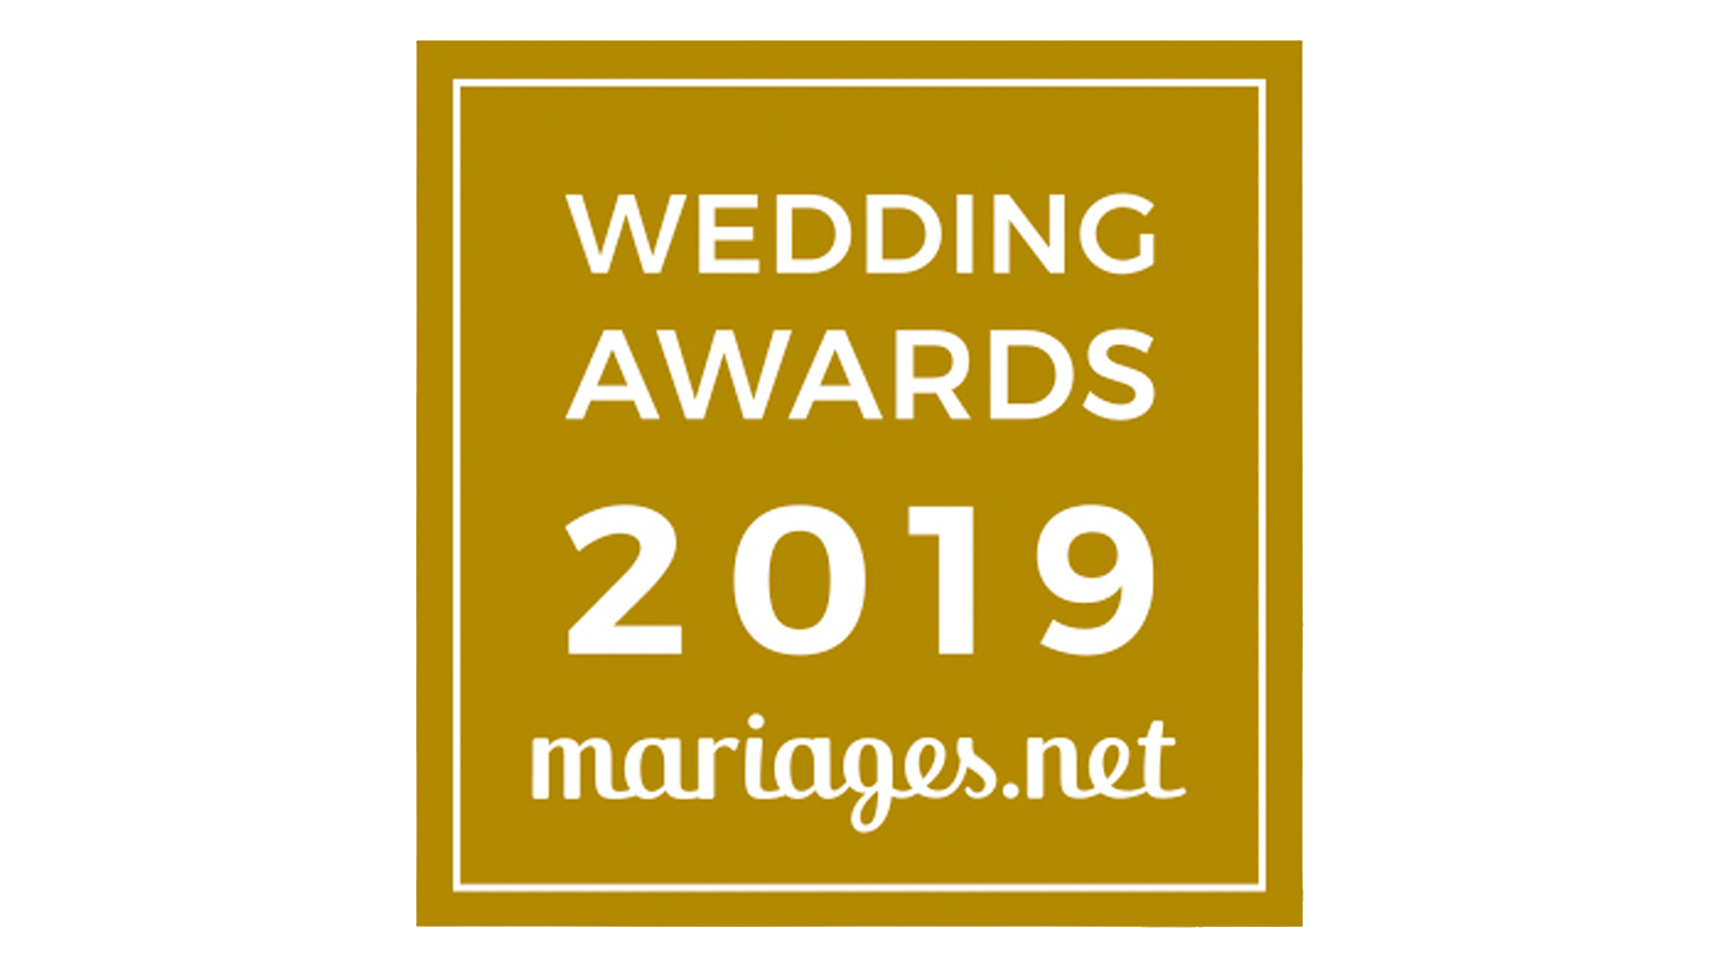 Mariages Wedding Récompense Award Meilleur Best DJ Animation O-LIVE Productions Mariages.net